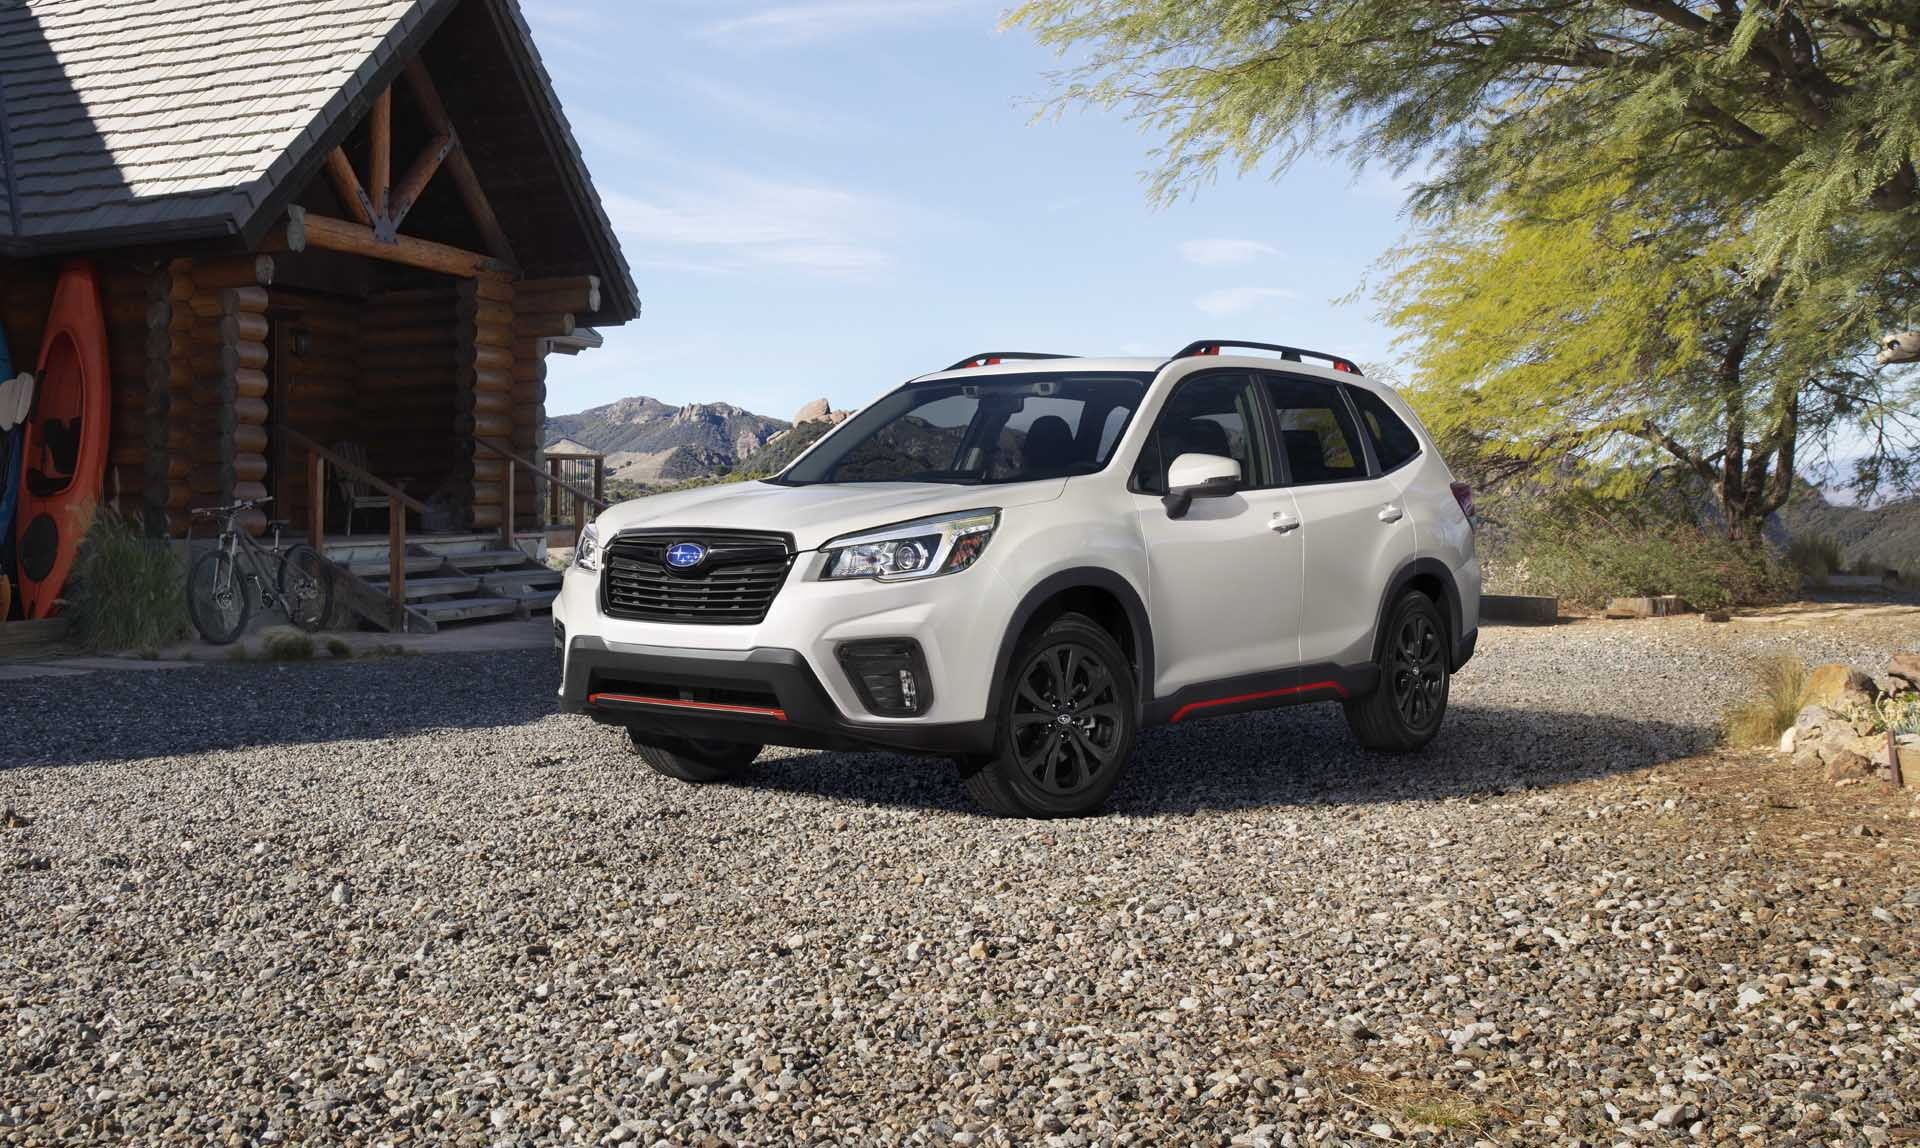 Crossover Vs Suv >> 2020 Subaru Forester Vs Honda Cr V Compare Crossover Suvs